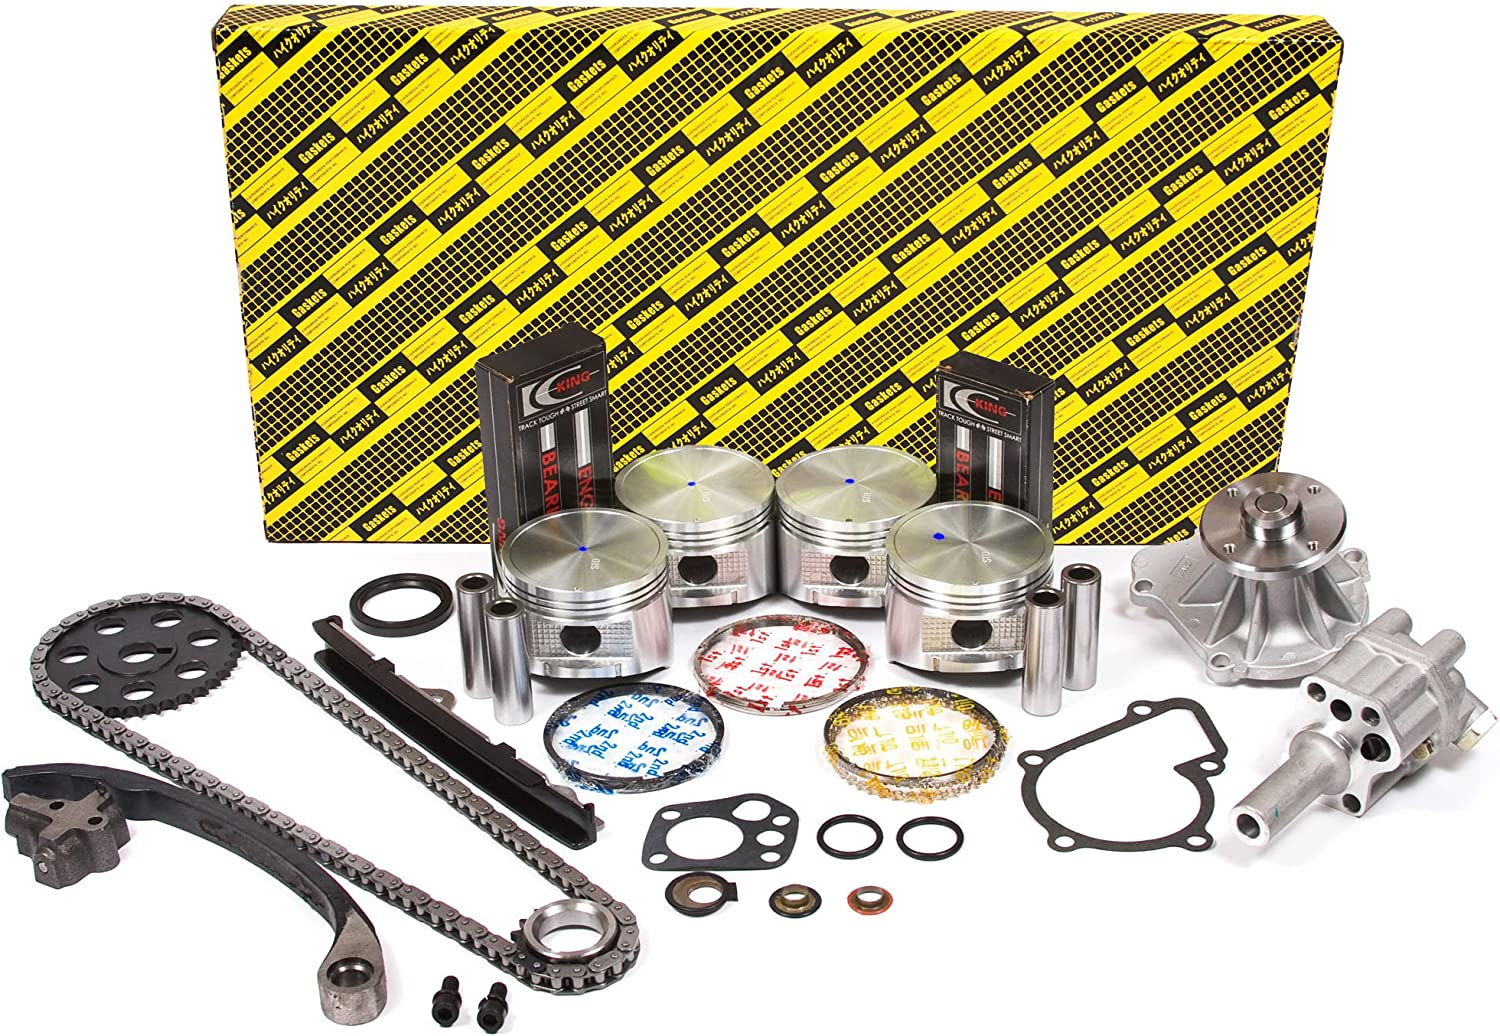 DNJ EK610 Engine Rebuild Kit for 1990-1995 Pickup Nissan KA24E 2389cc 2.4L 12V SOHC L4 D21